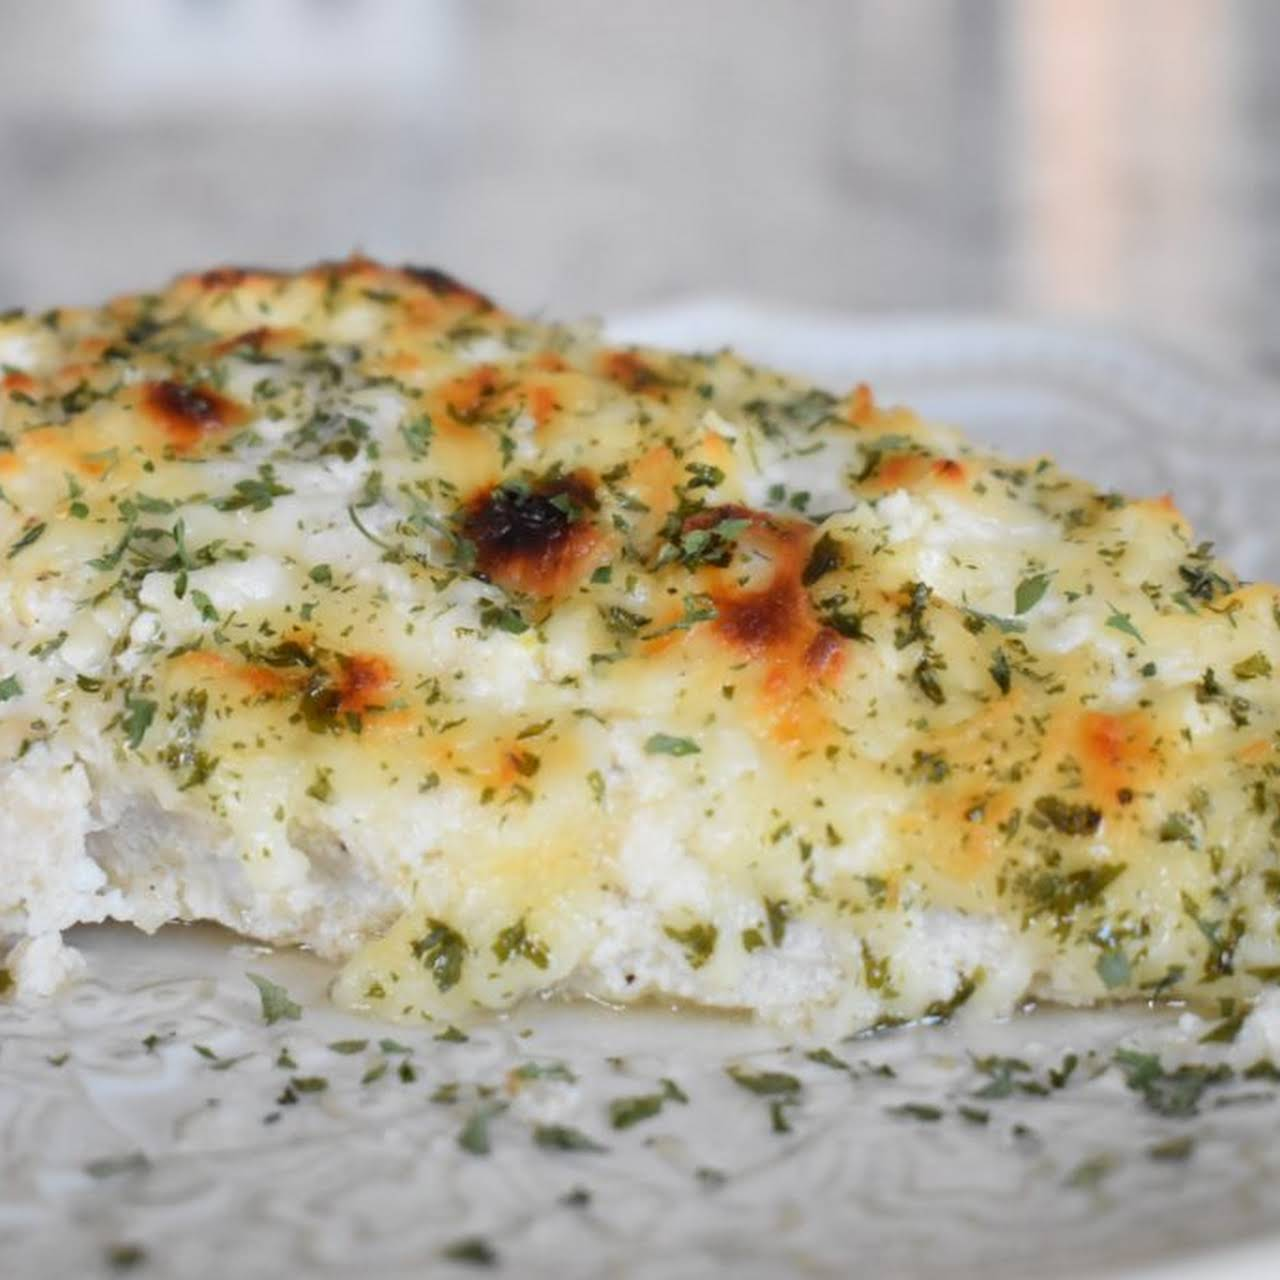 Baked Sour Cream Chicken Breast